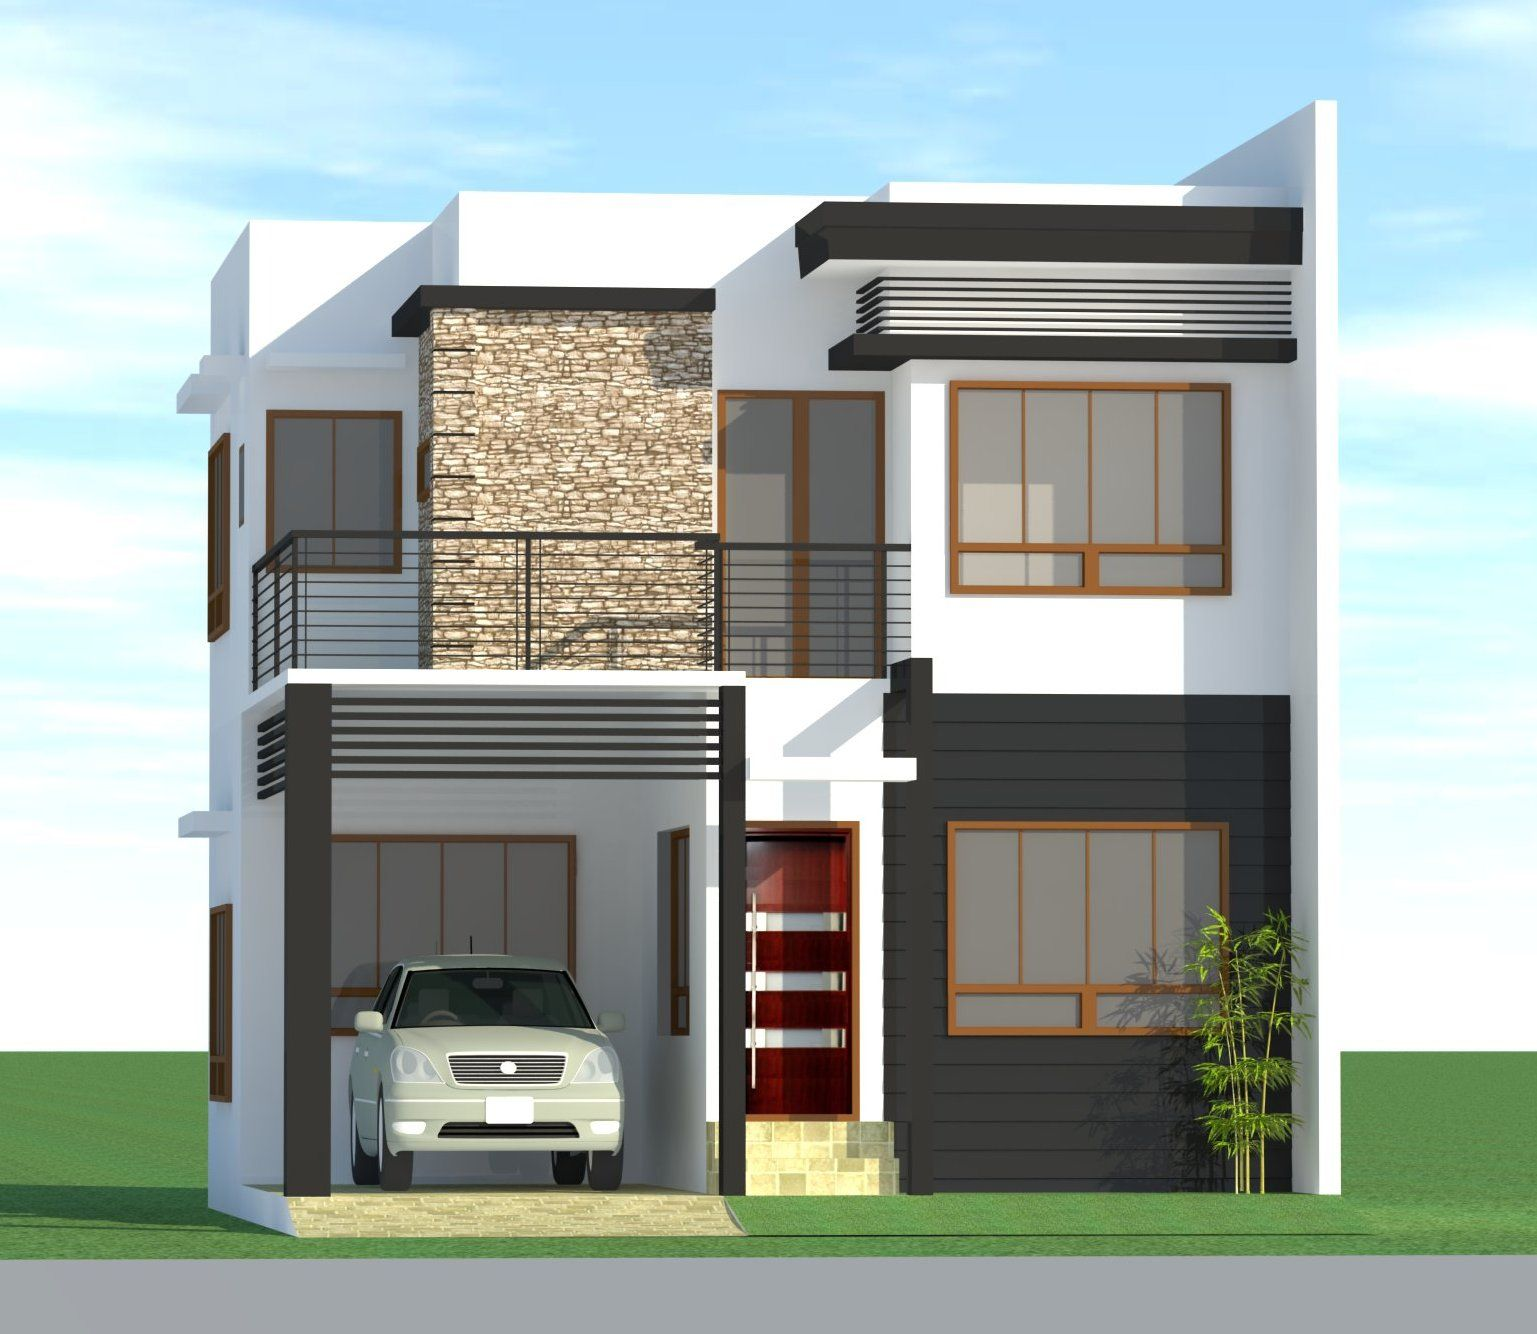 Philippines house design images 3 home design ideas for Small house plans philippines